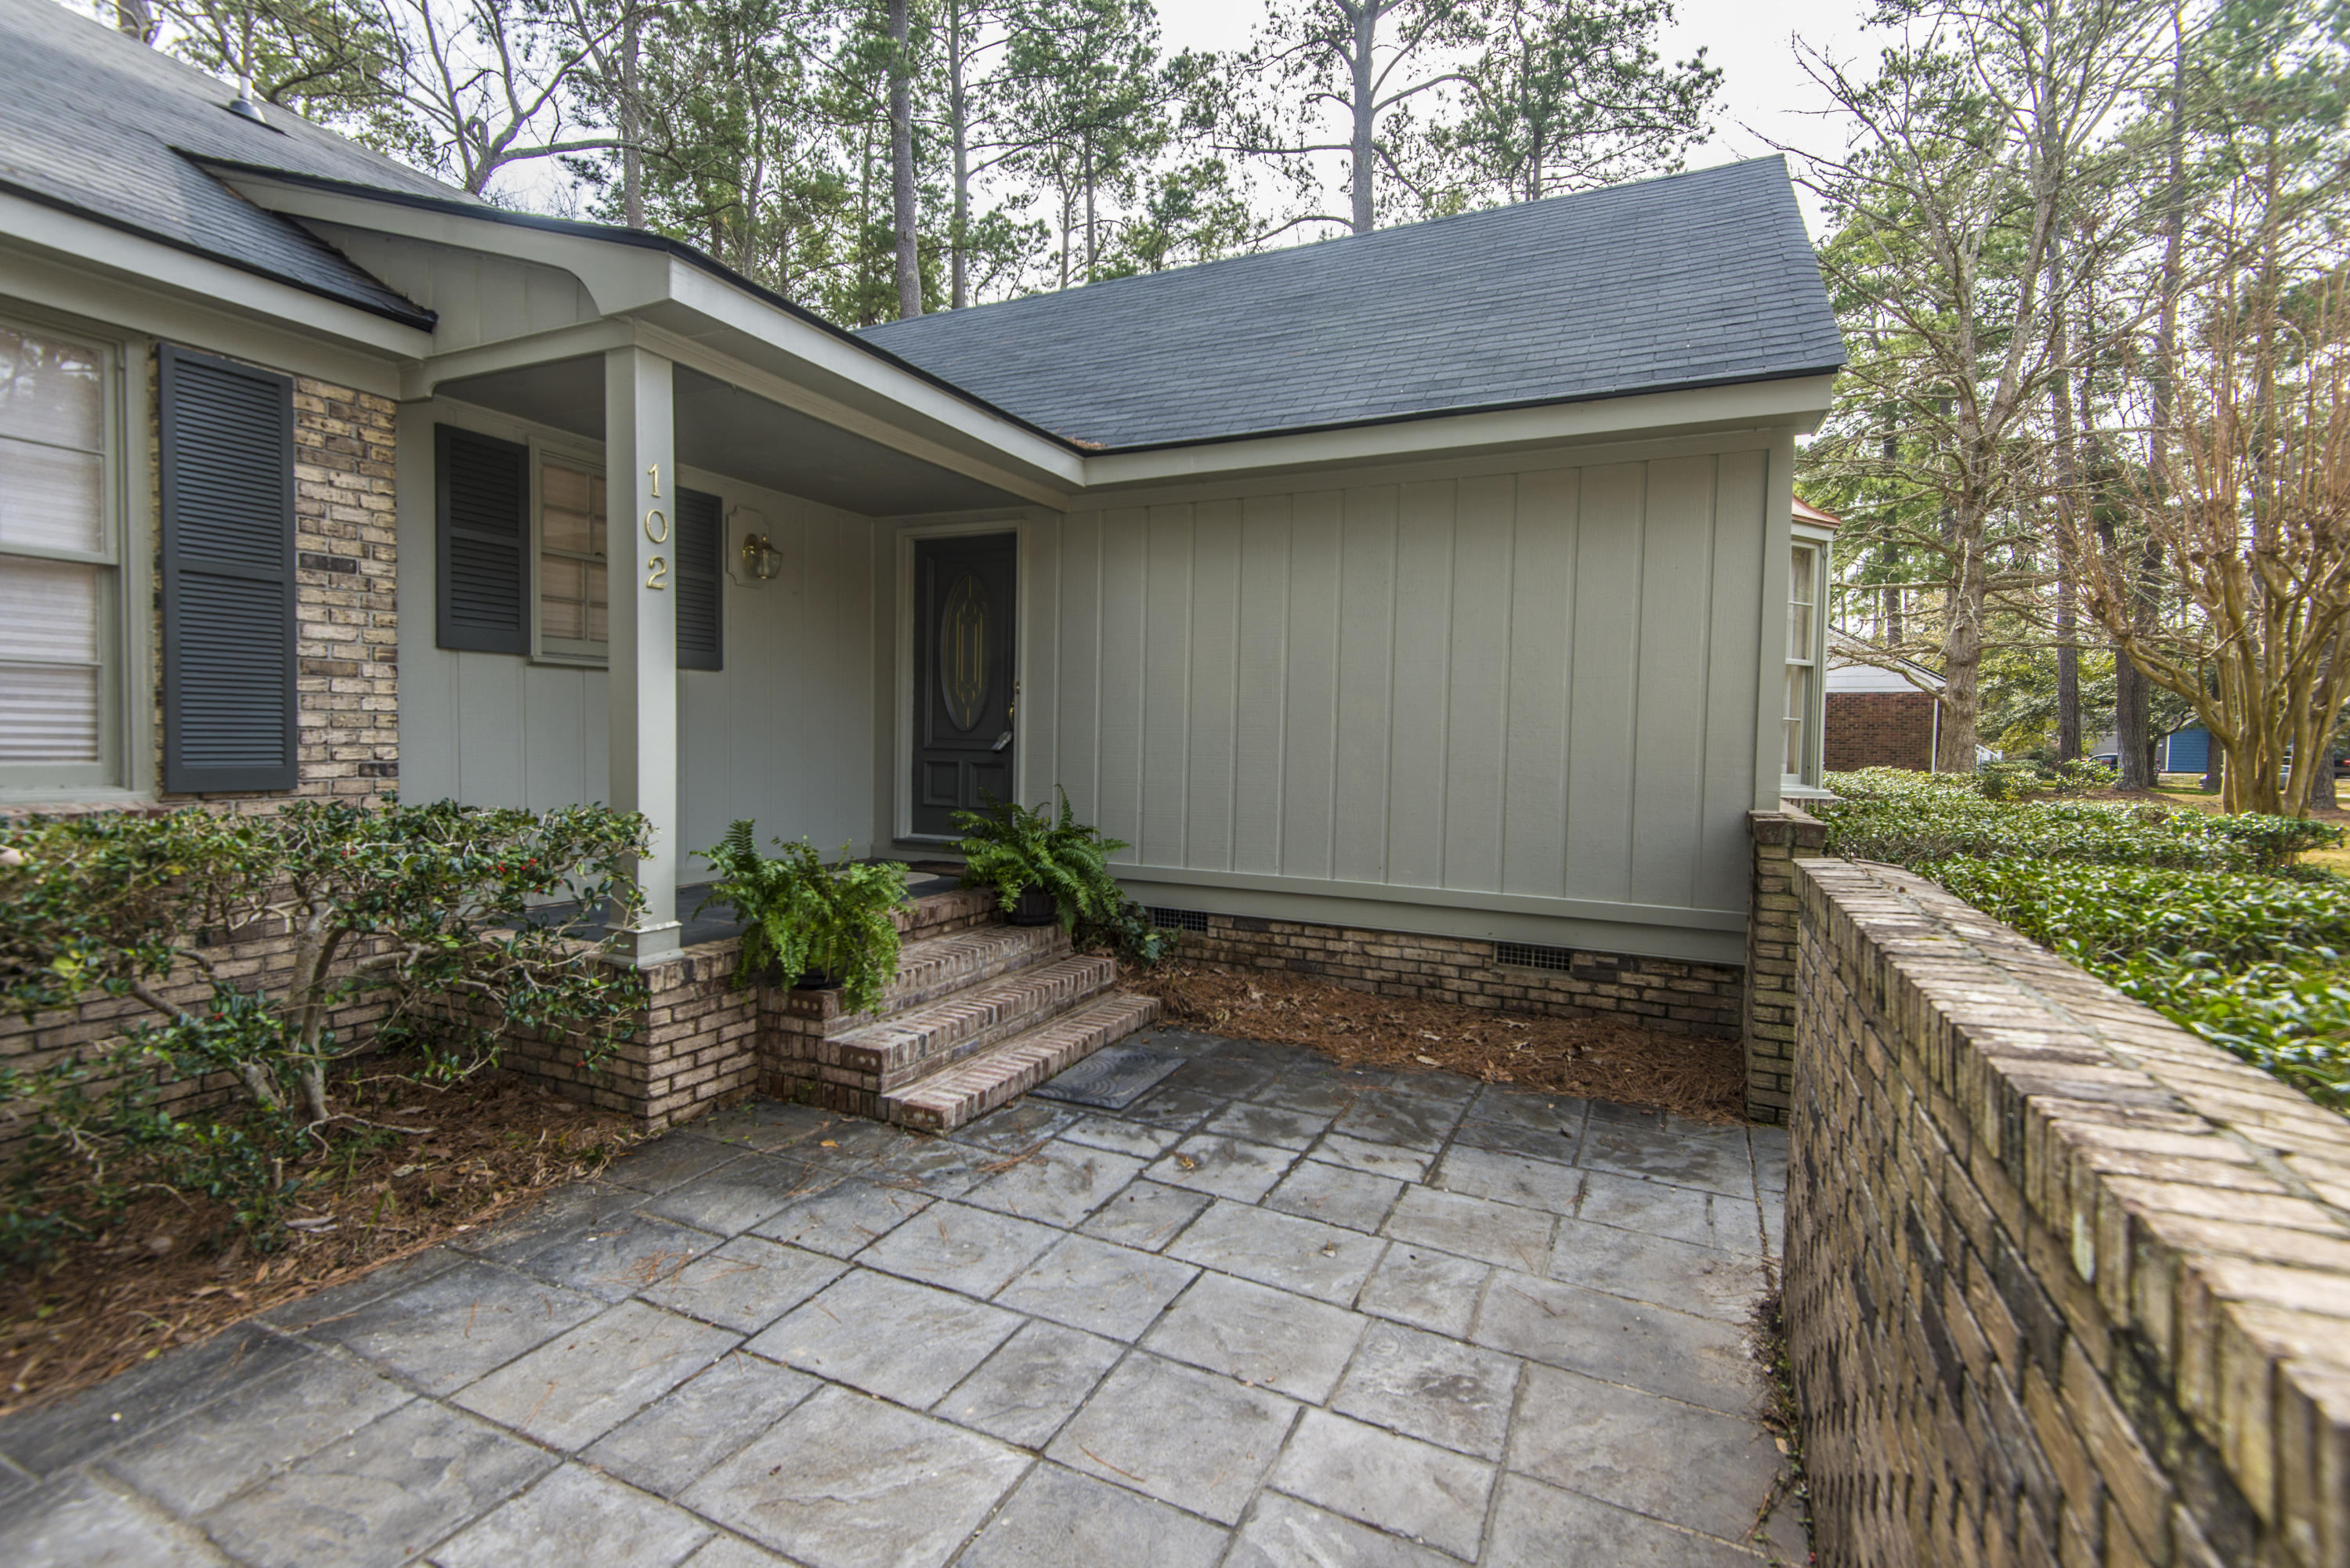 Kings Grant Homes For Sale - 102 Candlewood, Summerville, SC - 14